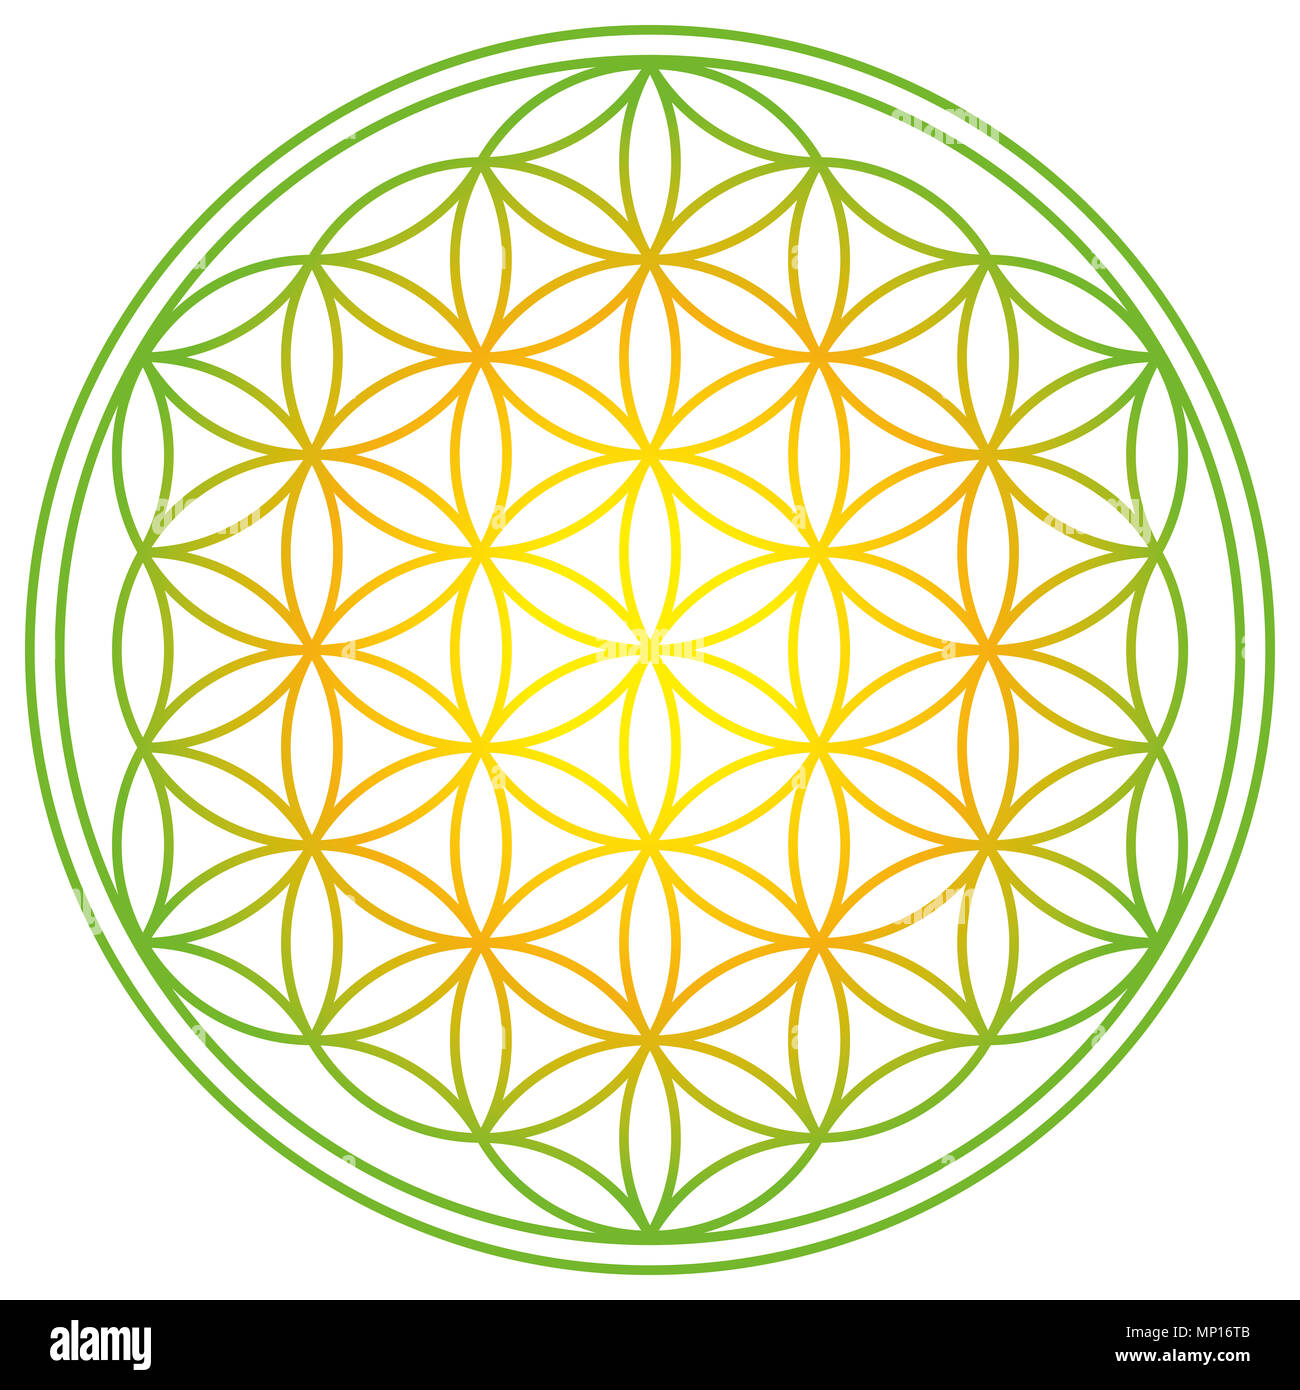 Flower Of Life With Spring Energy Colors Geometrical Figure